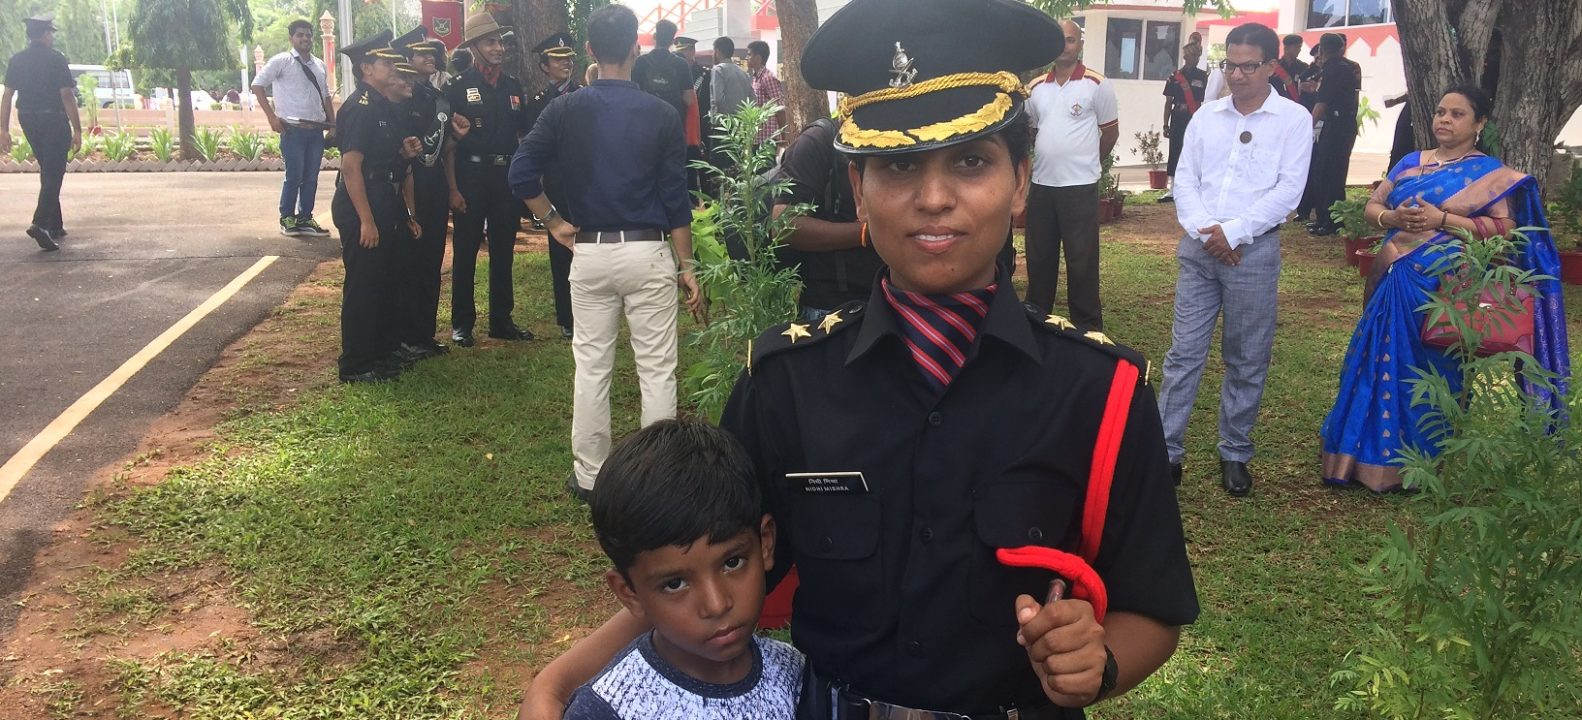 Lieutenant Nidhi Mishra with her son Suyash